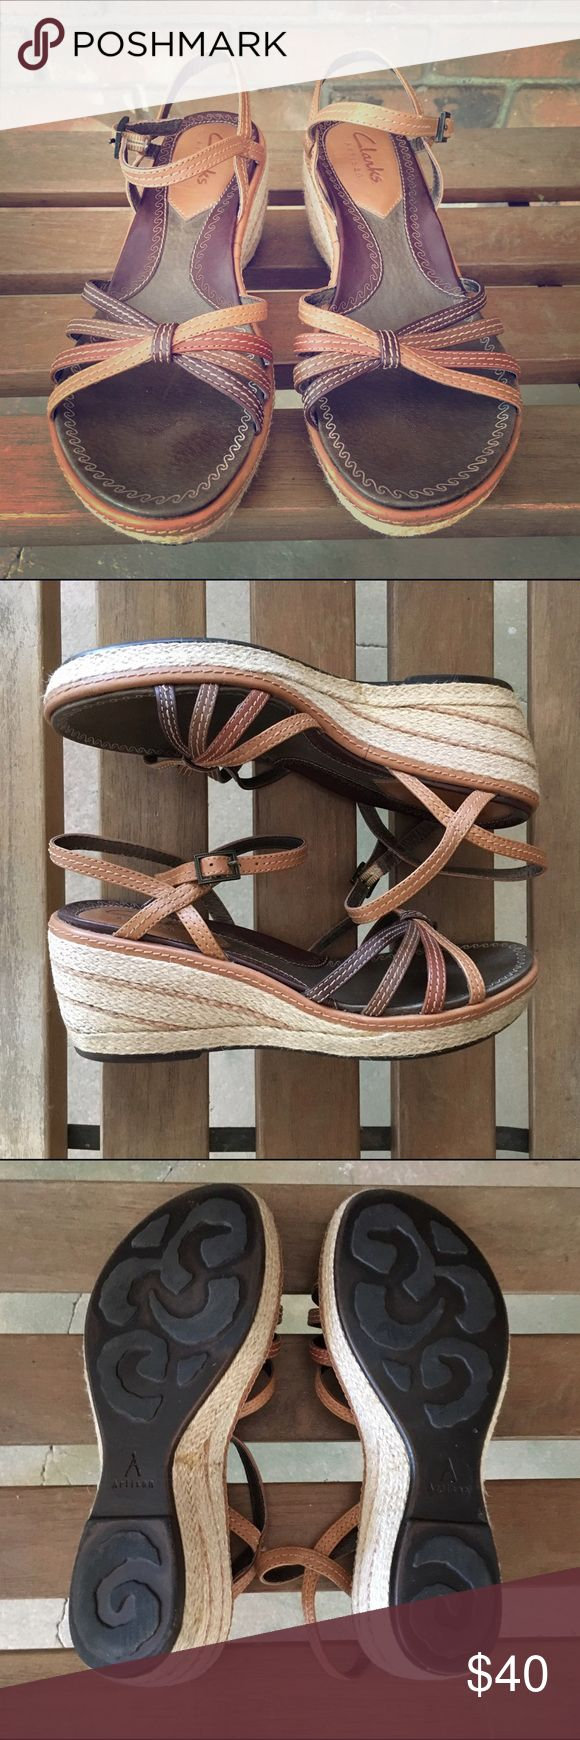 Clarks Artisan Tan Twill Cashmere Wedge Sandals Clarks brand sandals in excellent, like new condition.  Brown and tan with twill material on the wedges.  Leather straps. Clarks Shoes Sandals